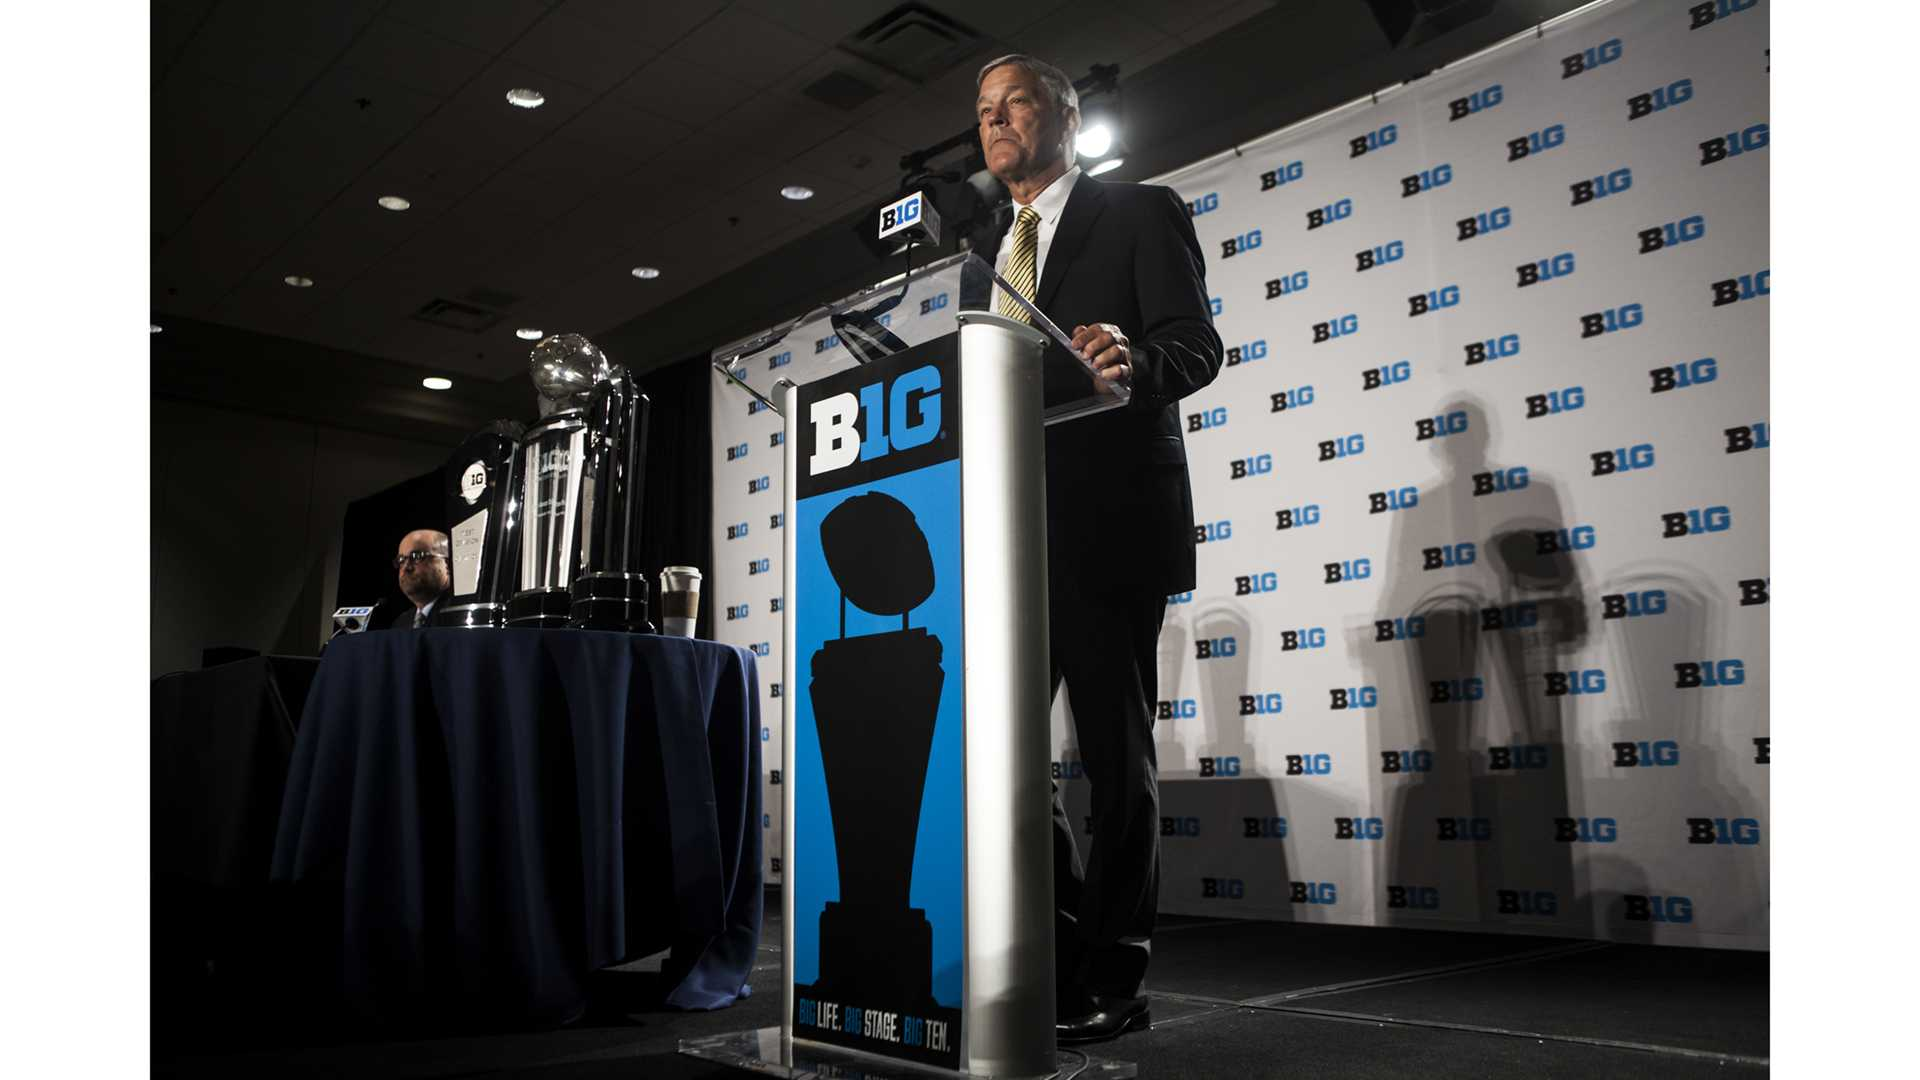 Kirk Ferentz speaks at Big Ten media days